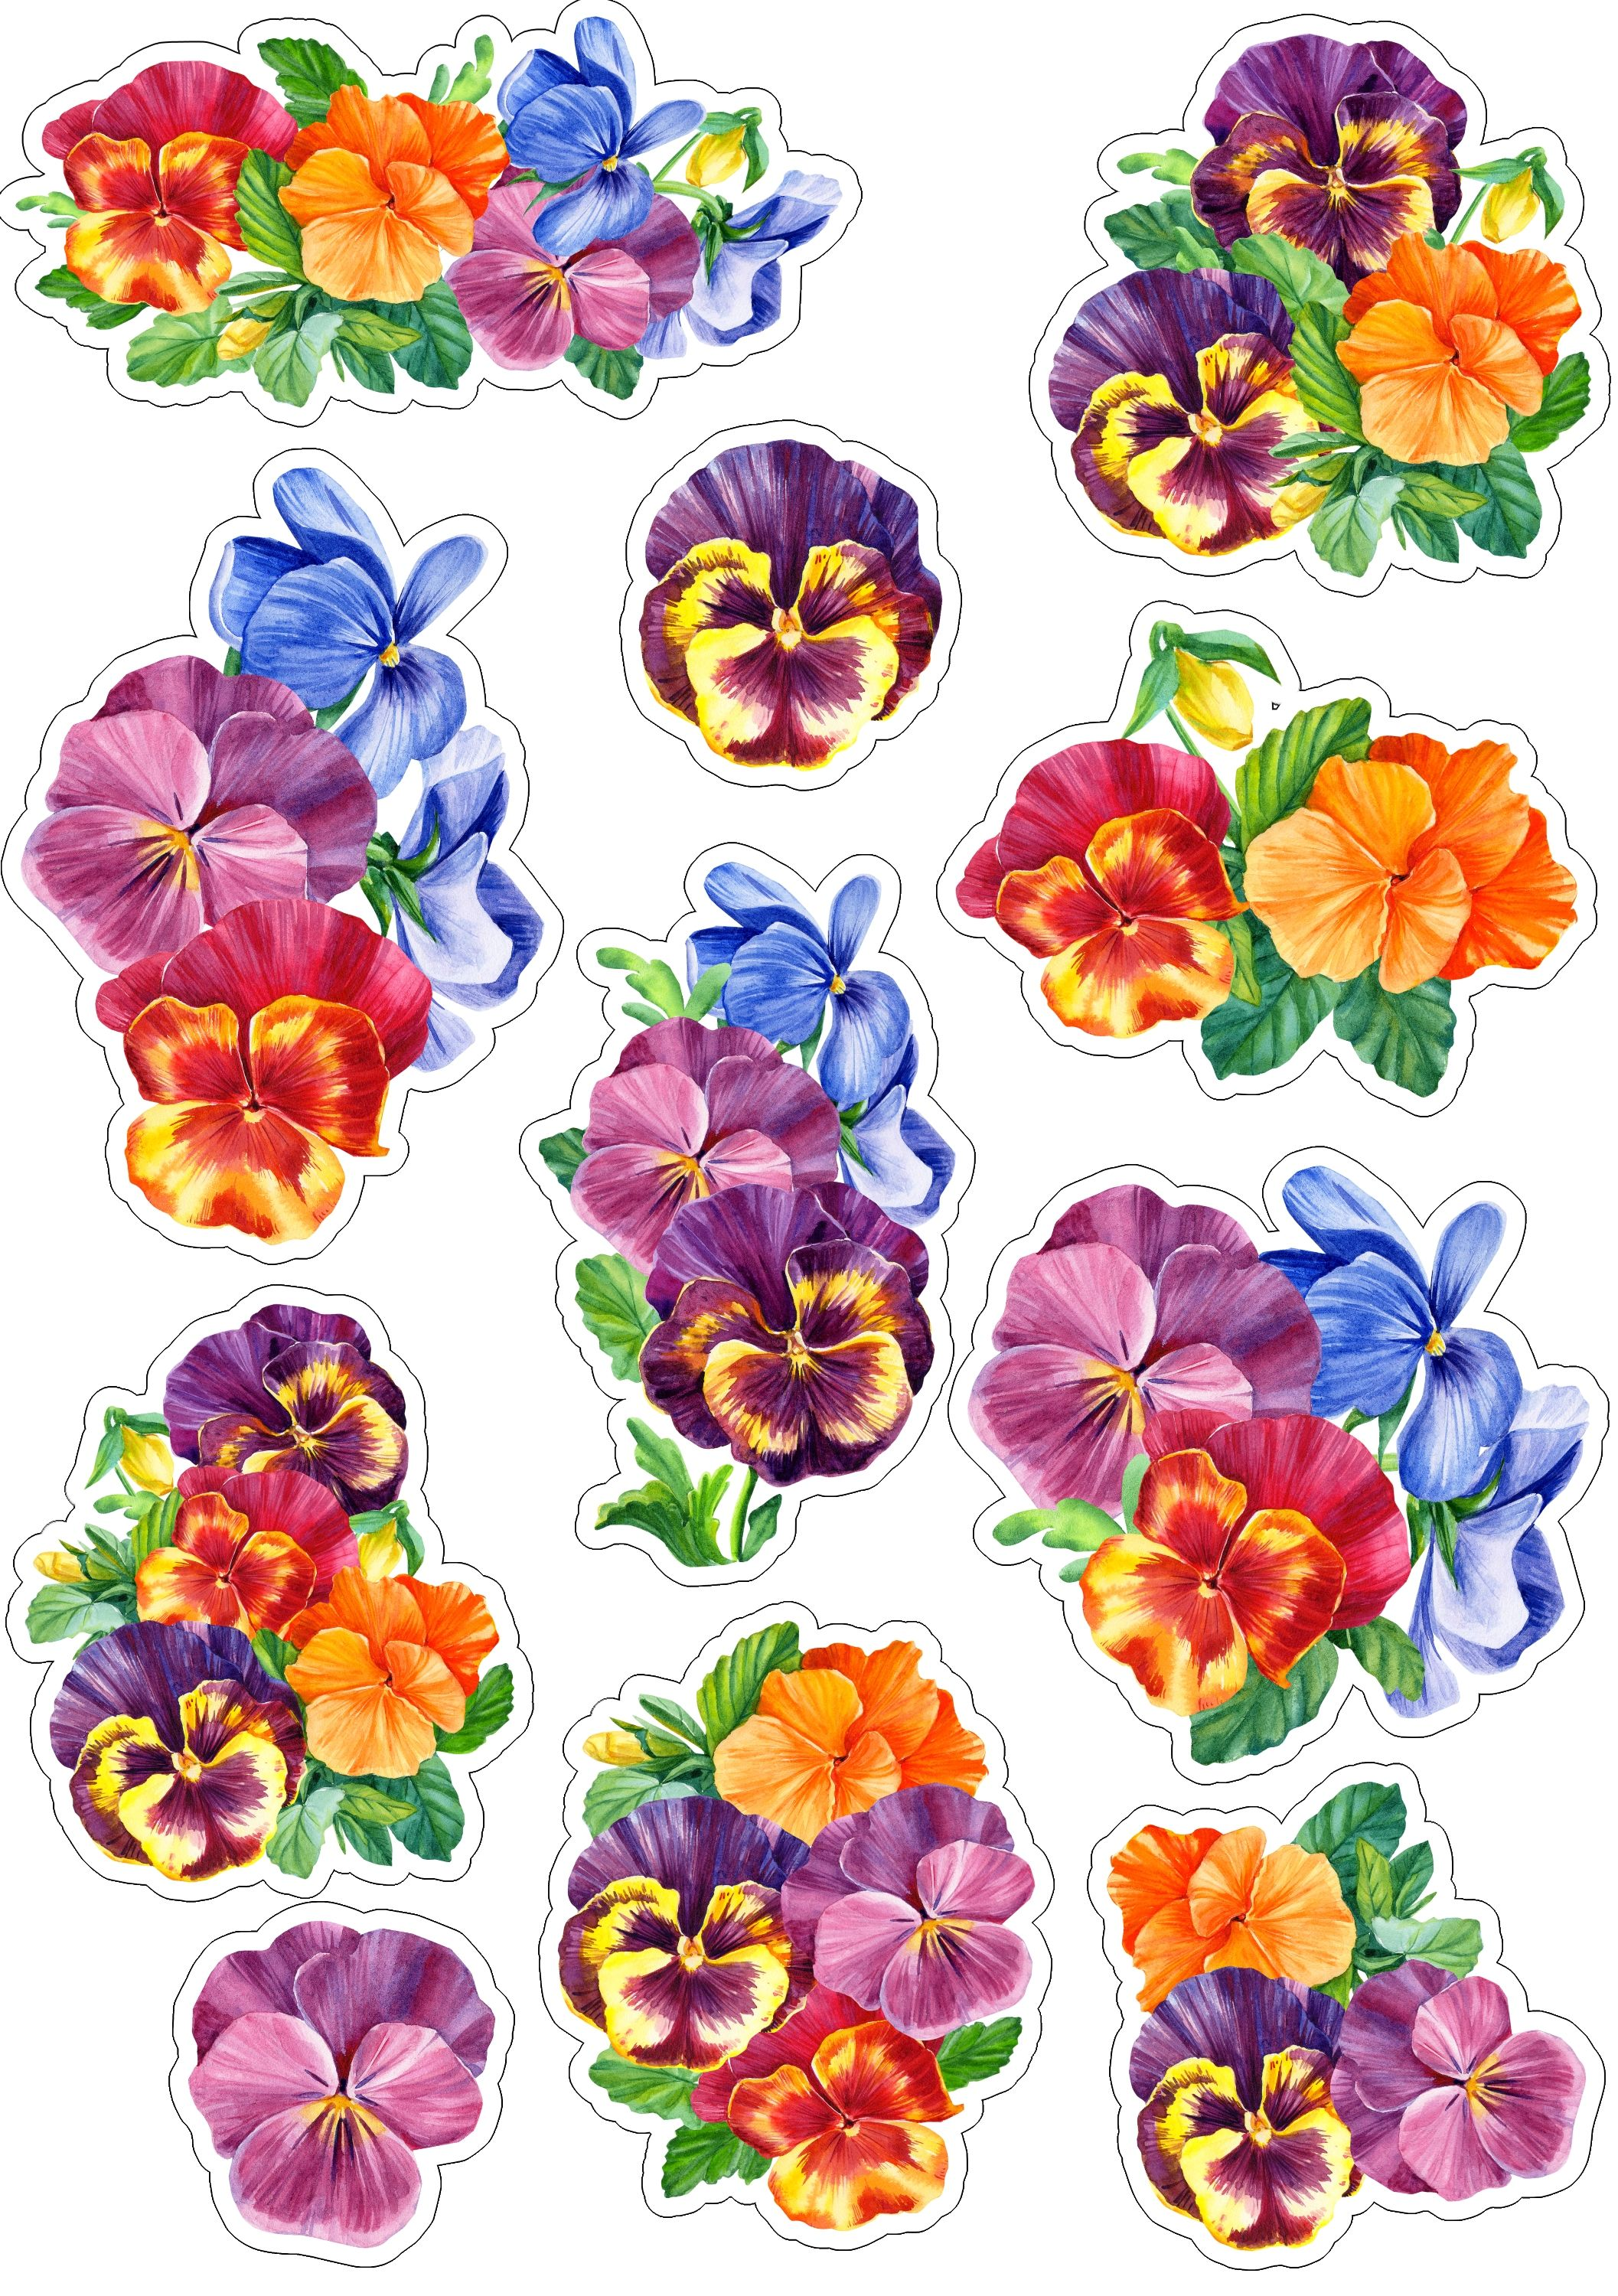 roses_стили и странички для скрапа | flowers | pinterest | decoupage